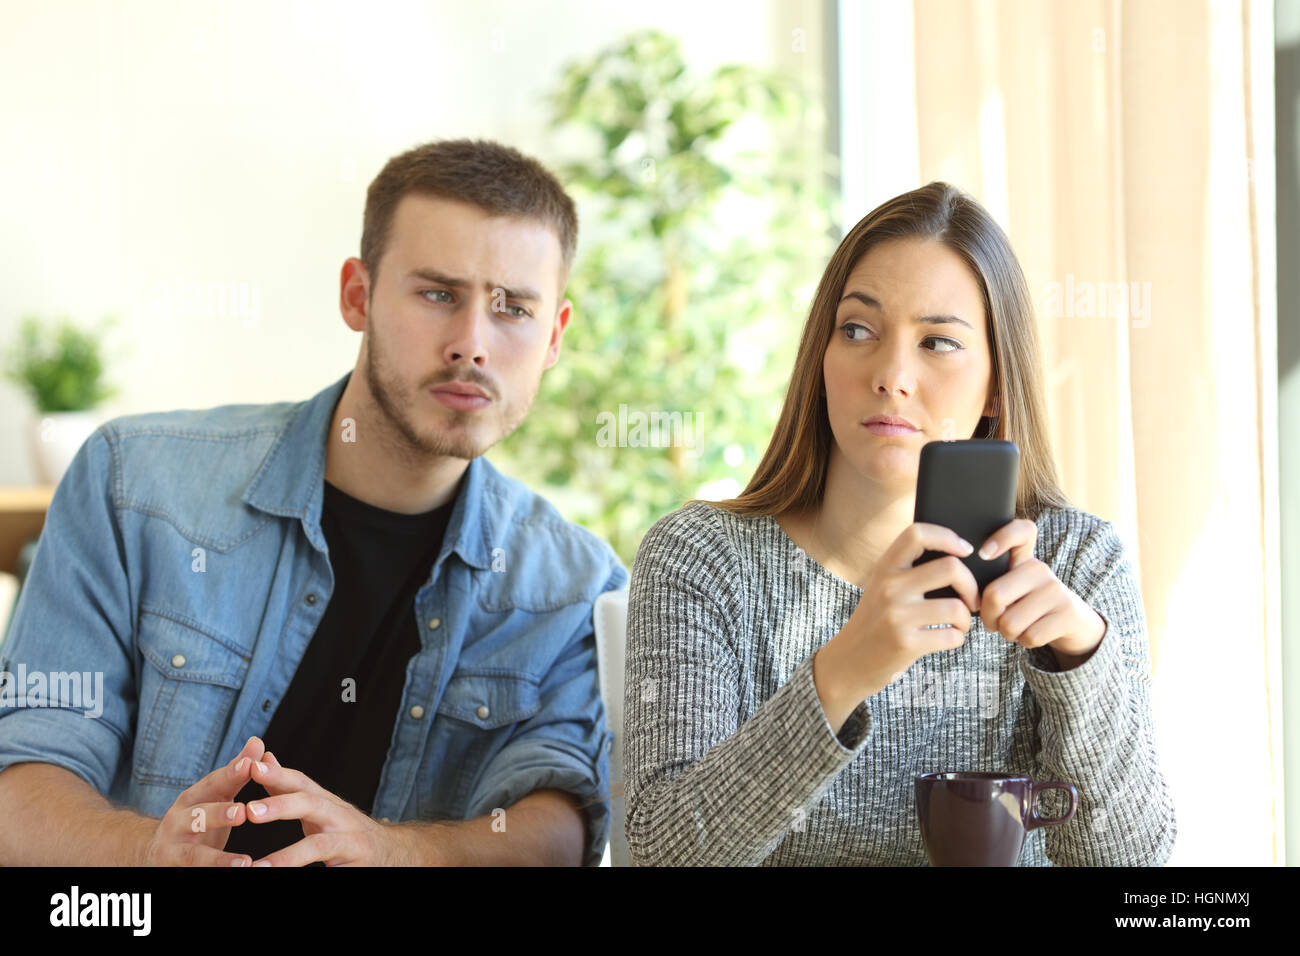 Jealous boyfriend spying his girlfriend watching her phone while she is looking him upset - Stock Image